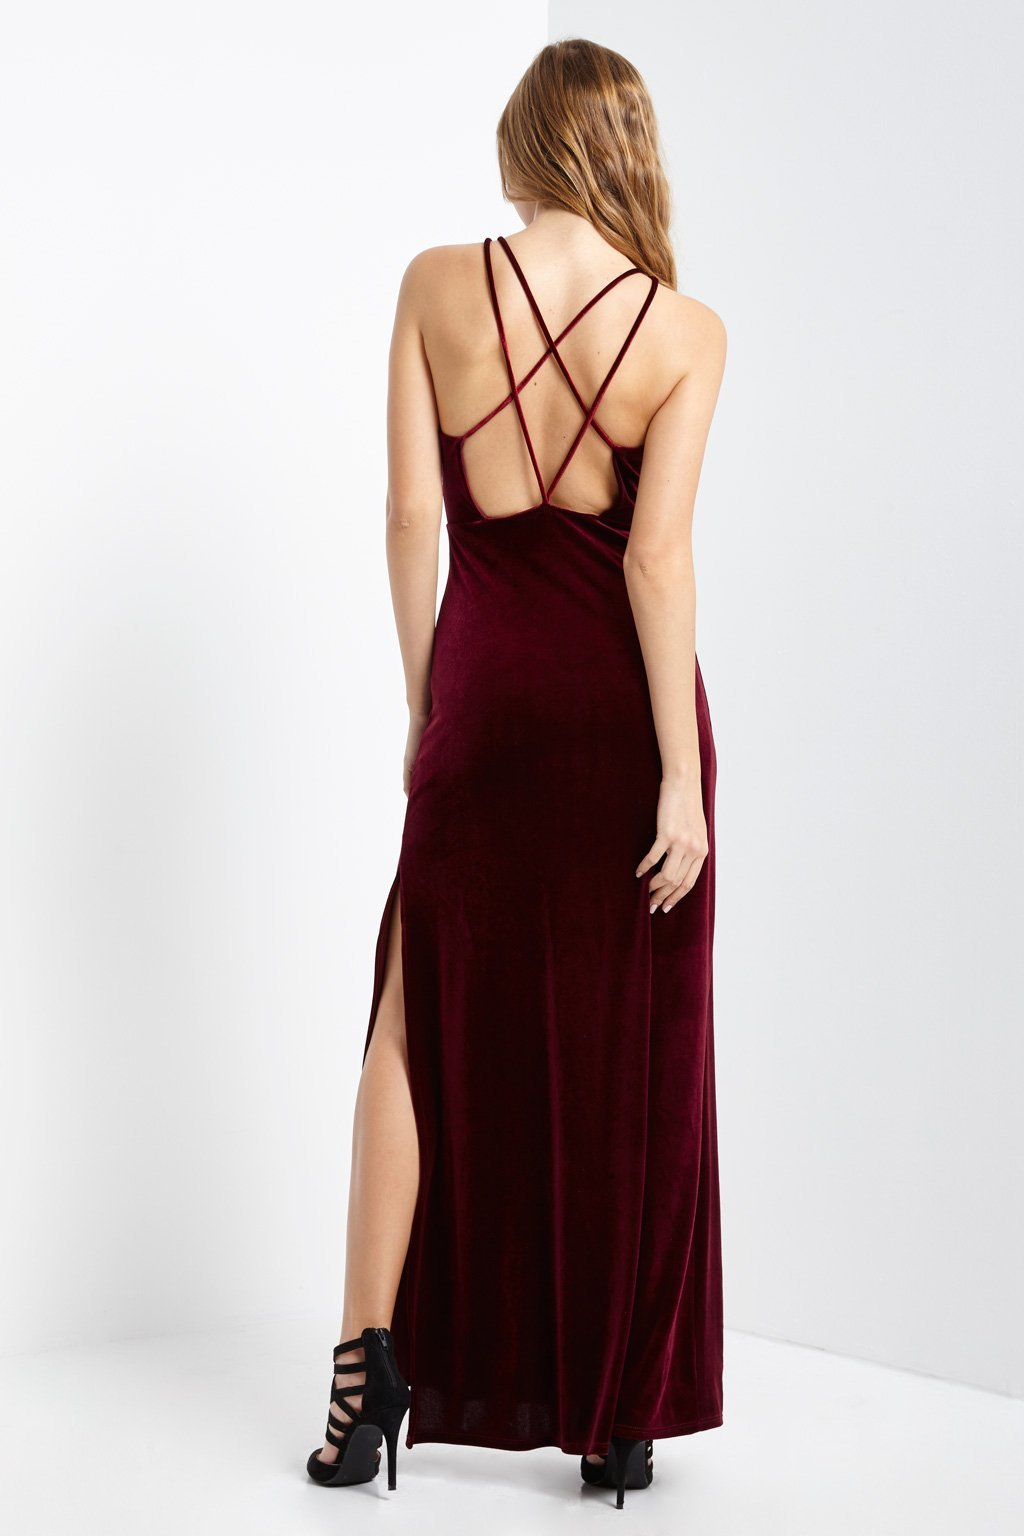 Poshsquare Dress Clint Velvet Maxi Dress